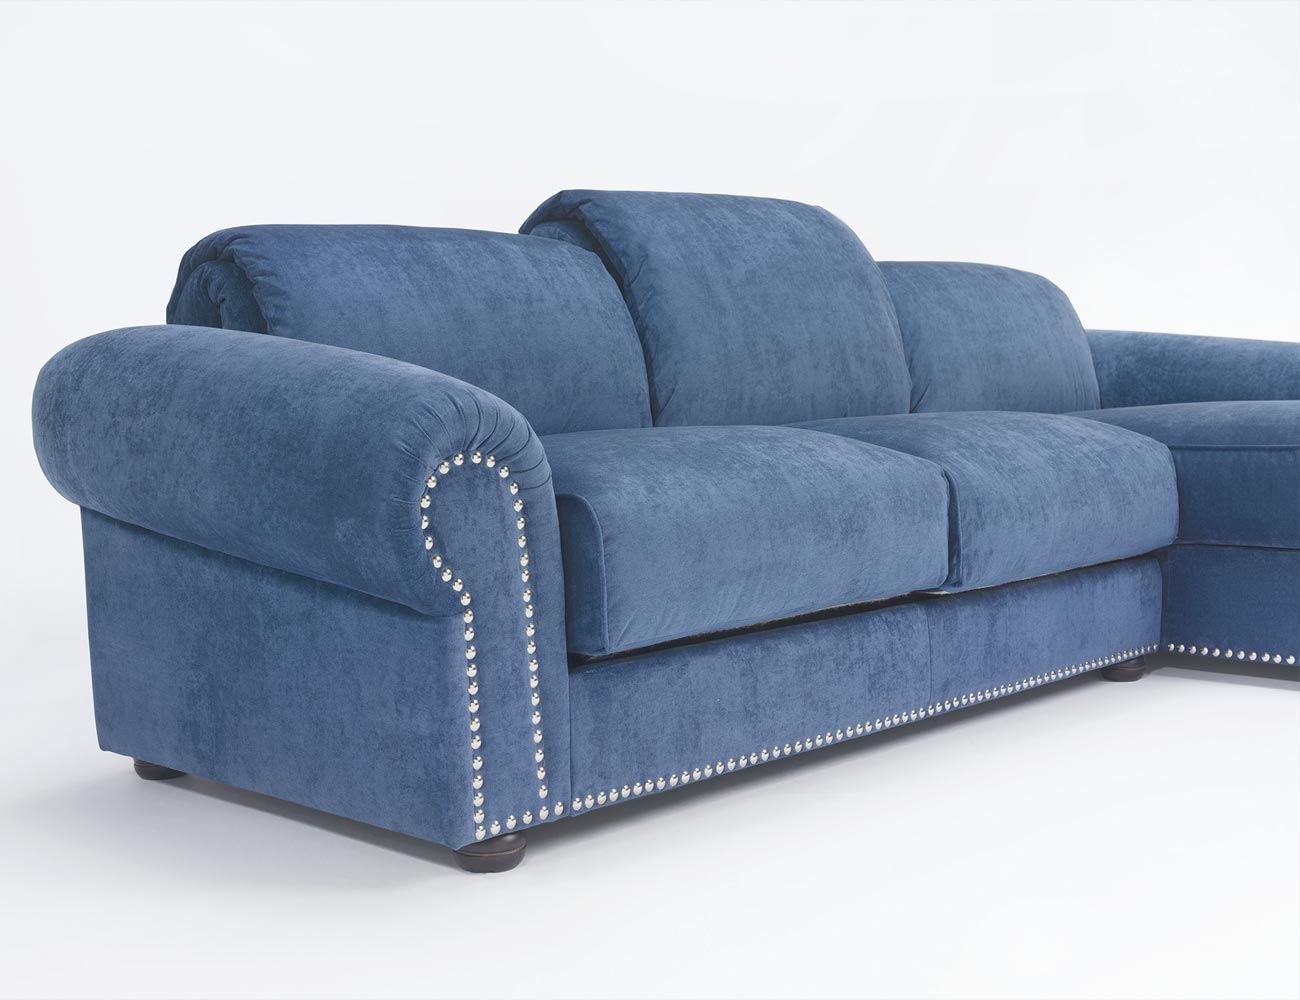 Sofa chaiselongue gran lujo decorativo azul 112